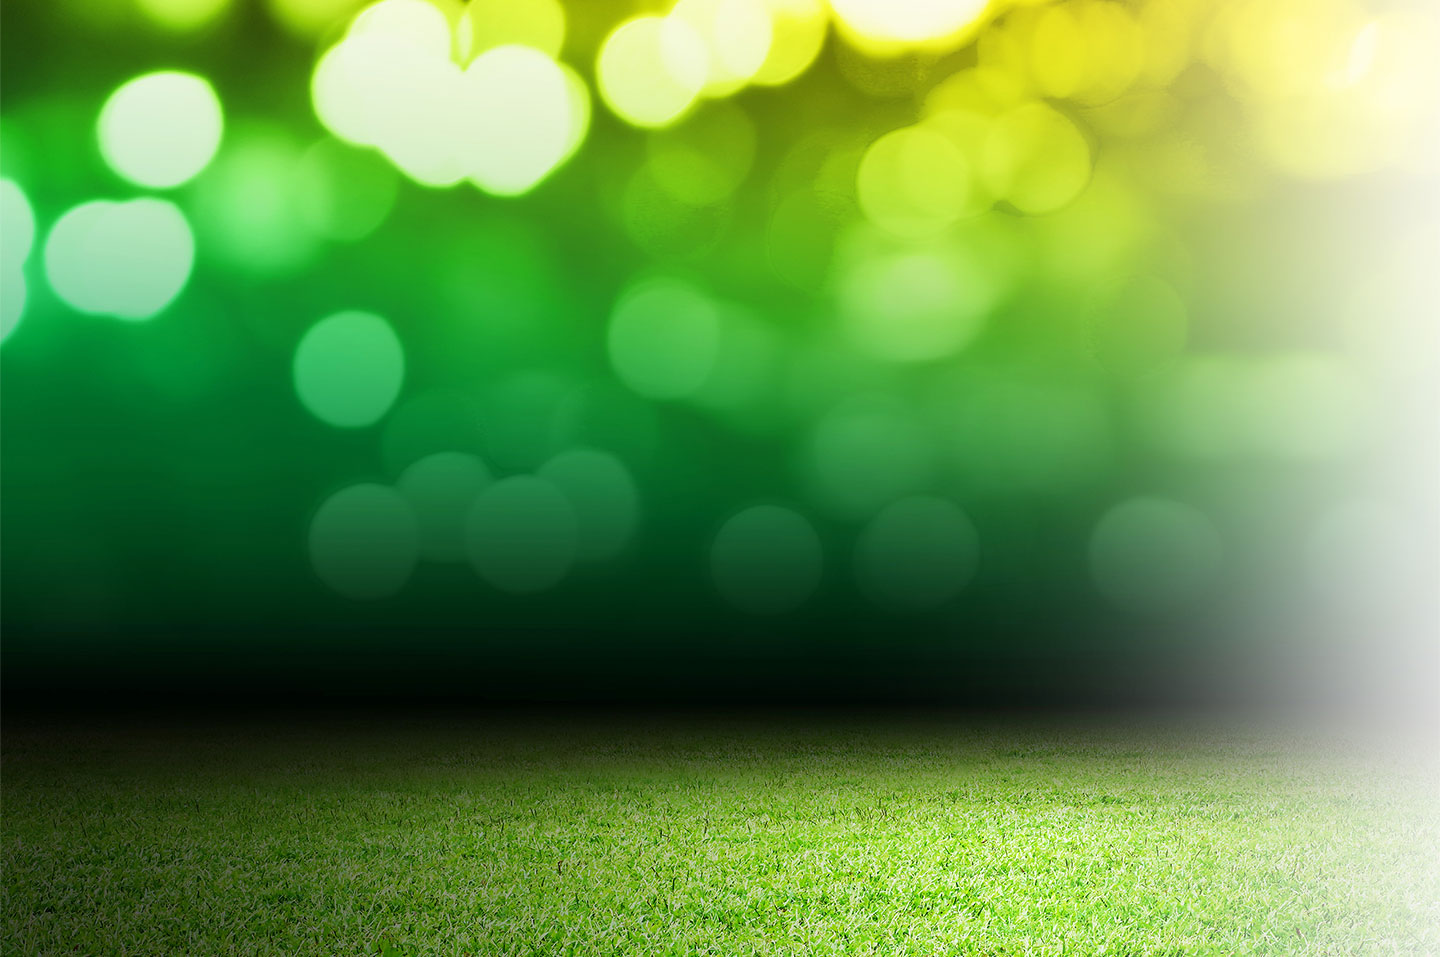 Blurred lights and grass background